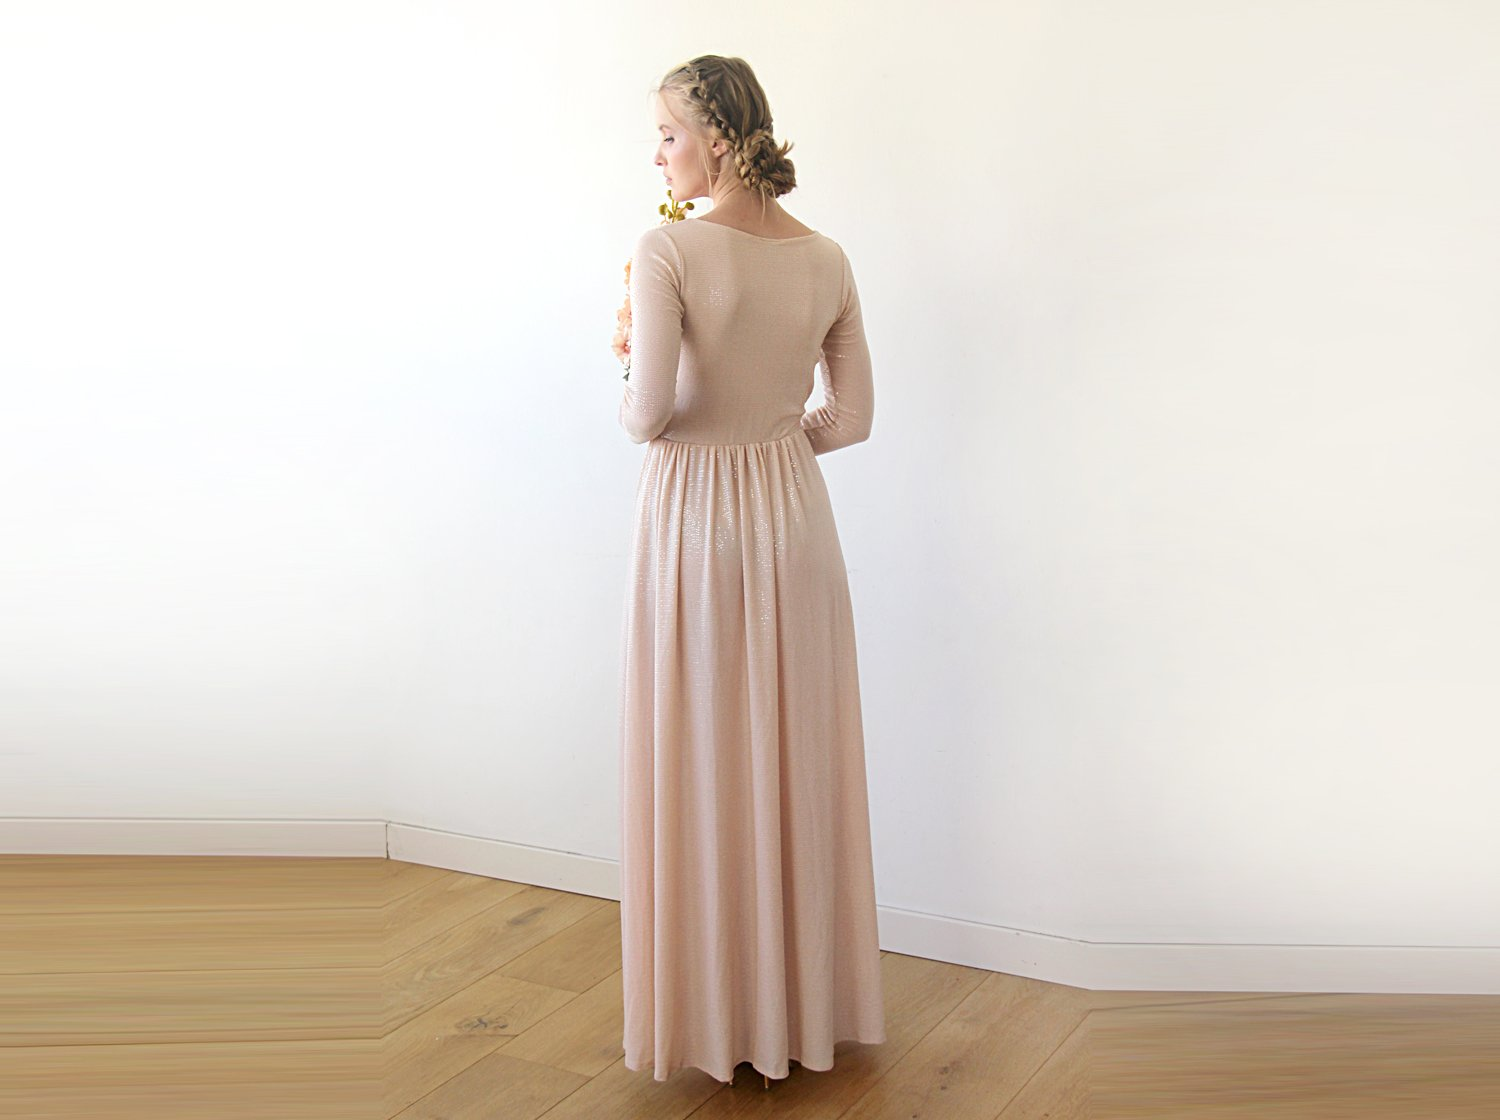 Blush shimmering dress , deep-v neckline dress with a sexy slit , long sleeves formal dress, pink bridesmaids dress 1199 - Blushfashion